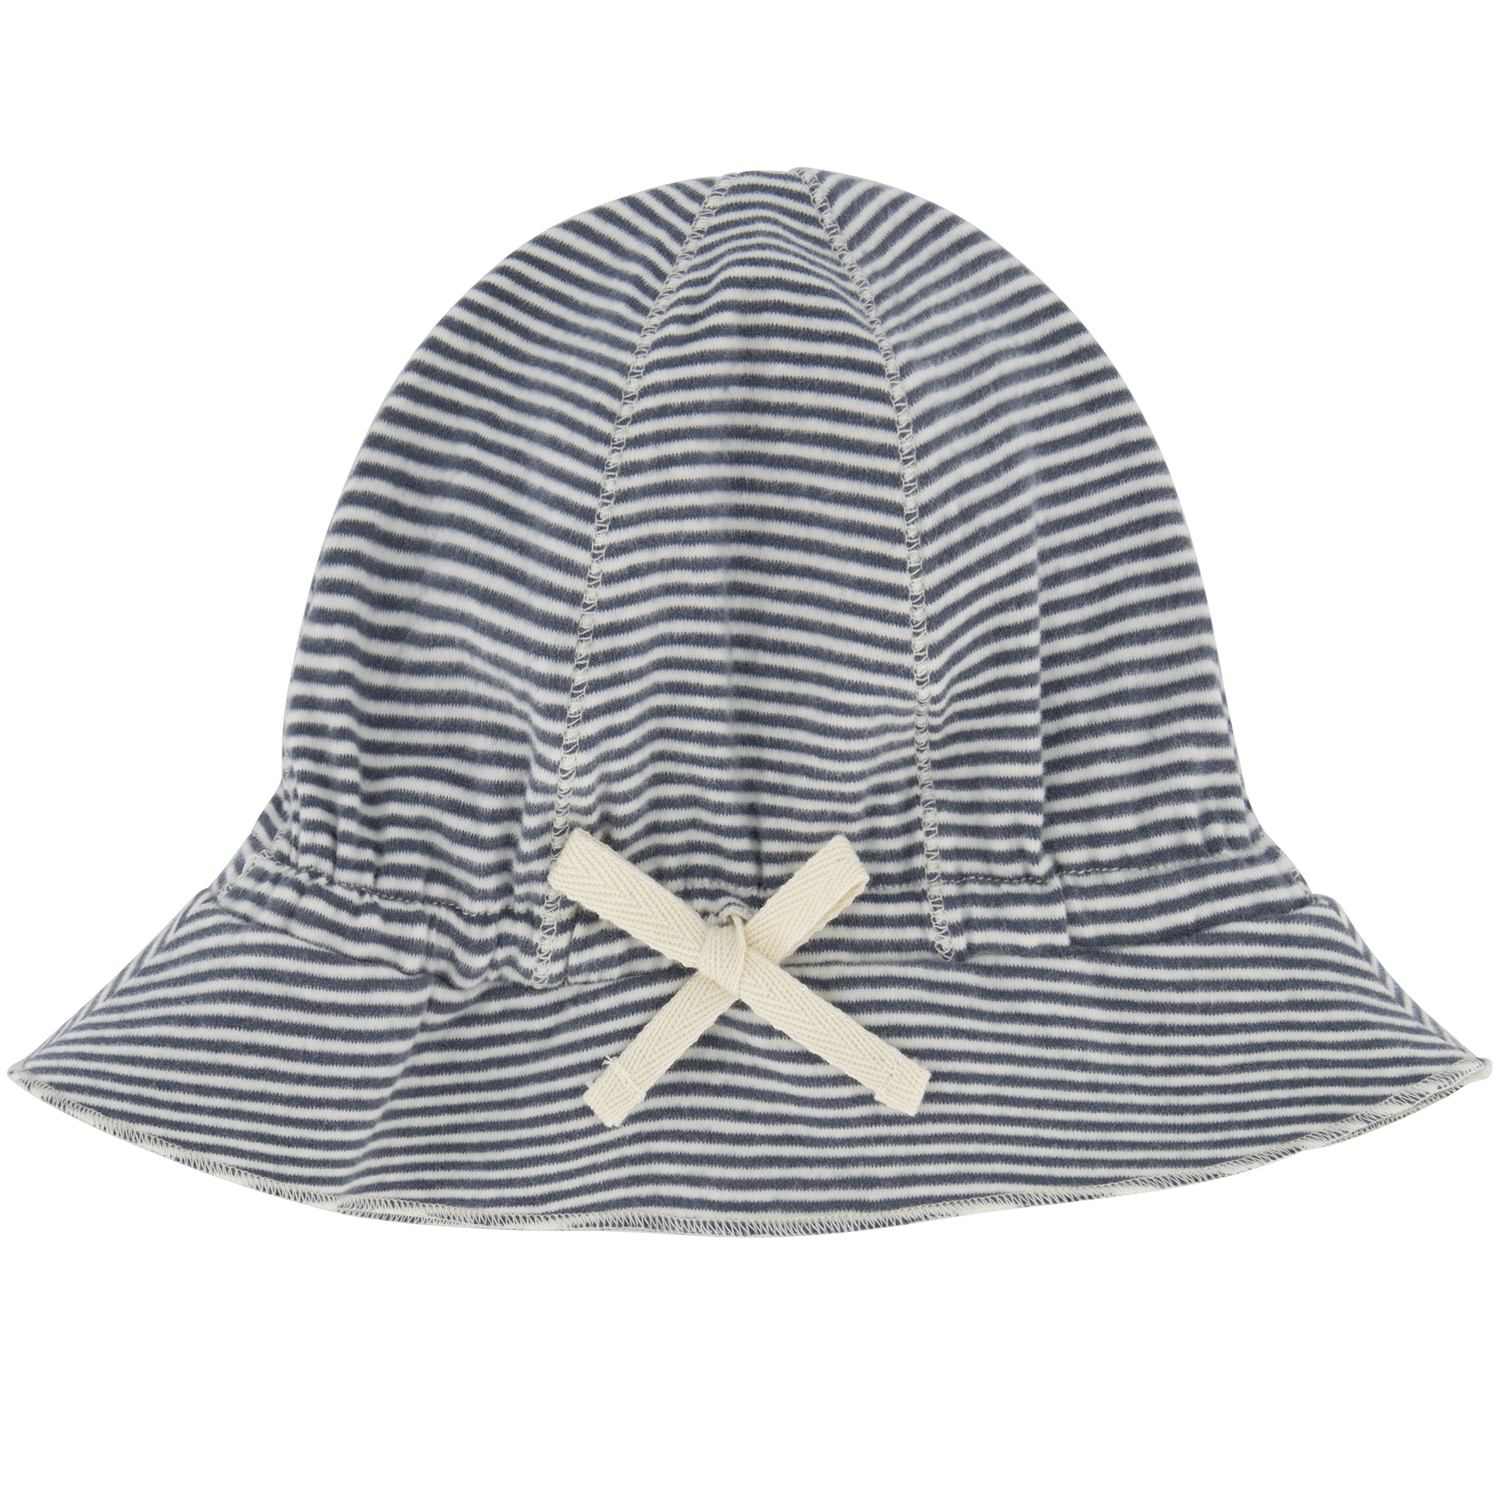 gray label baby sun hat blue grey cream